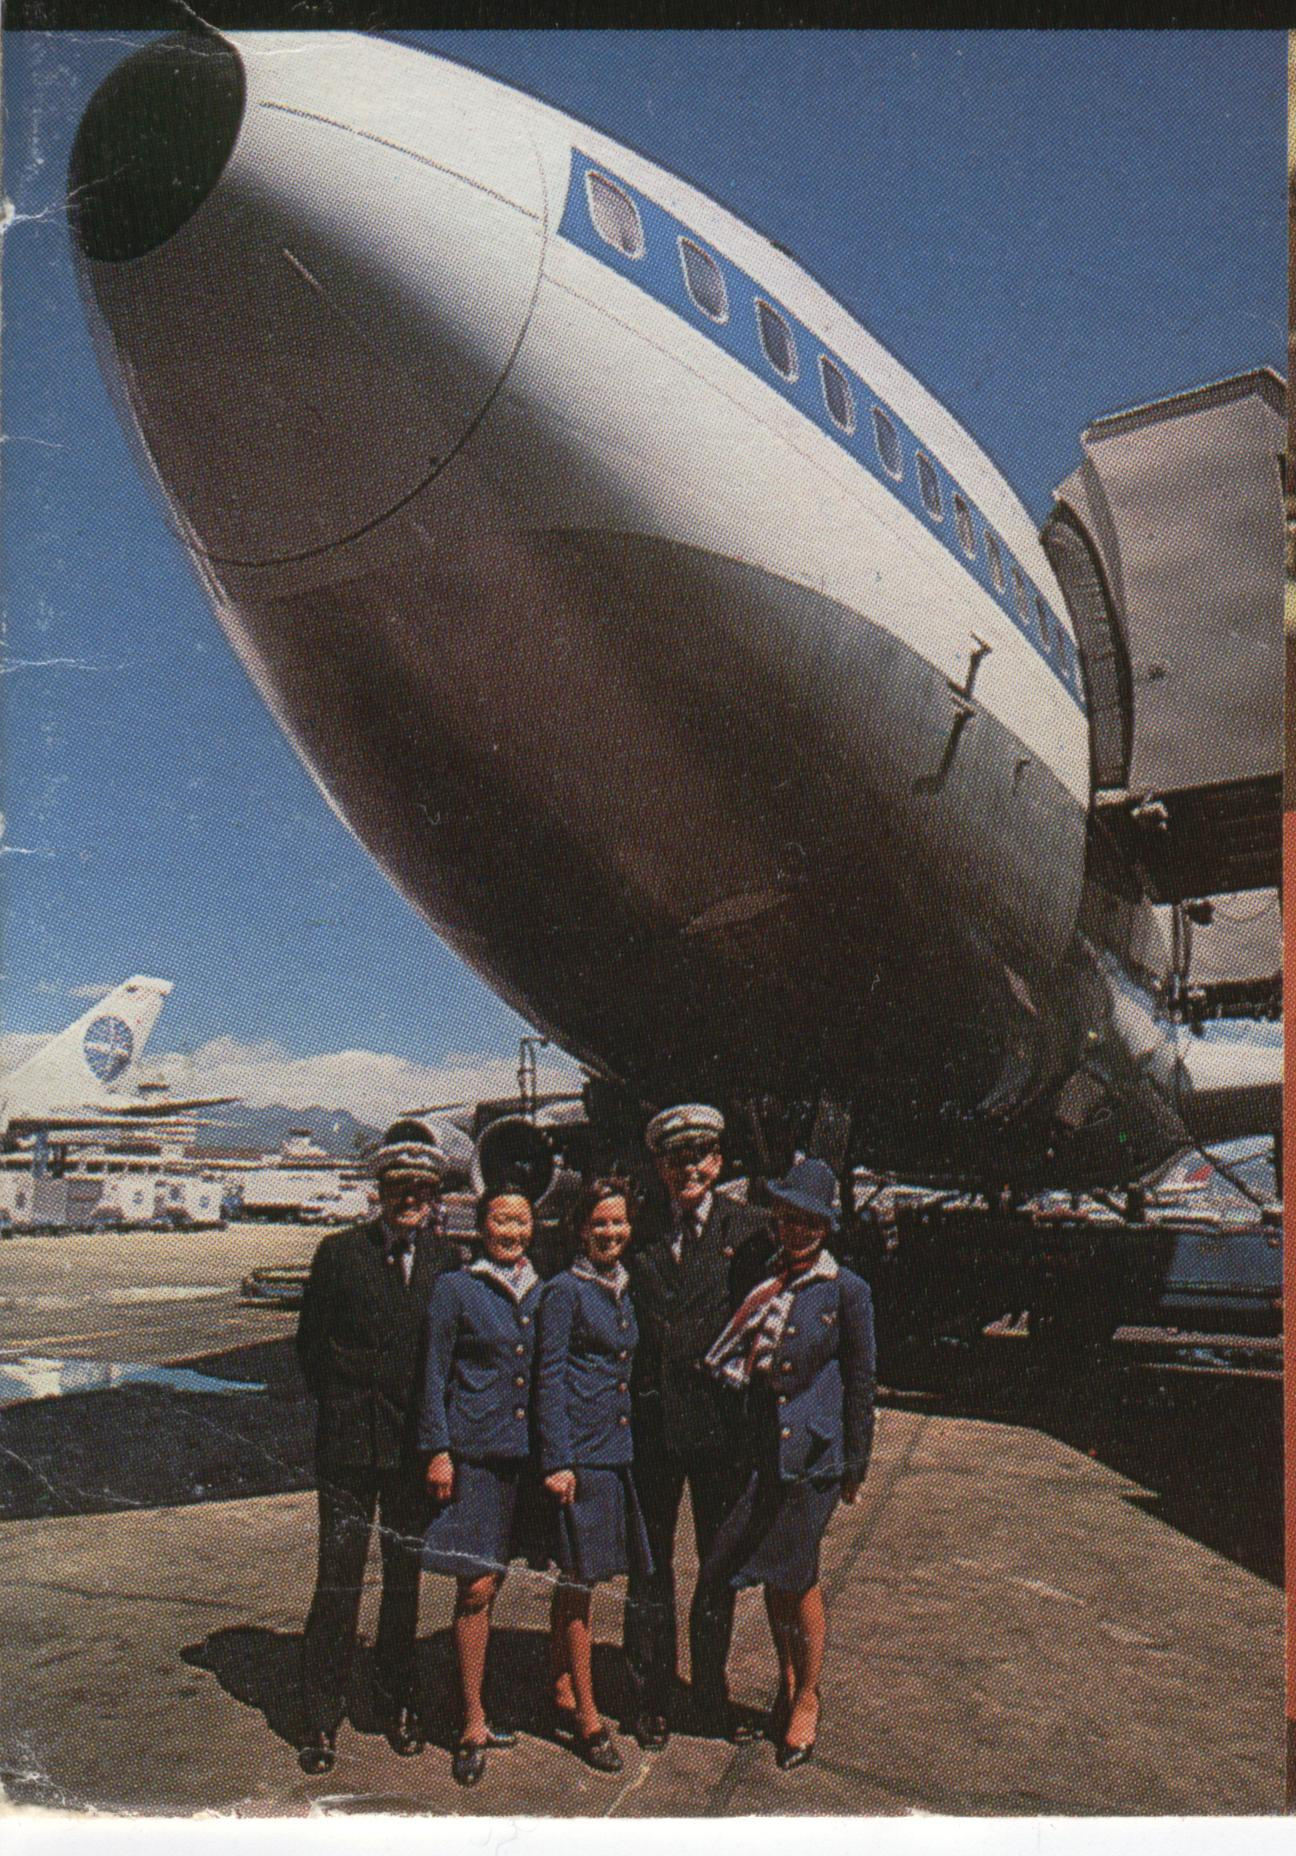 1977 Some Pan Am crew members pose by the nose of a 747 at the gate in San Francisco with the mountains in the background.